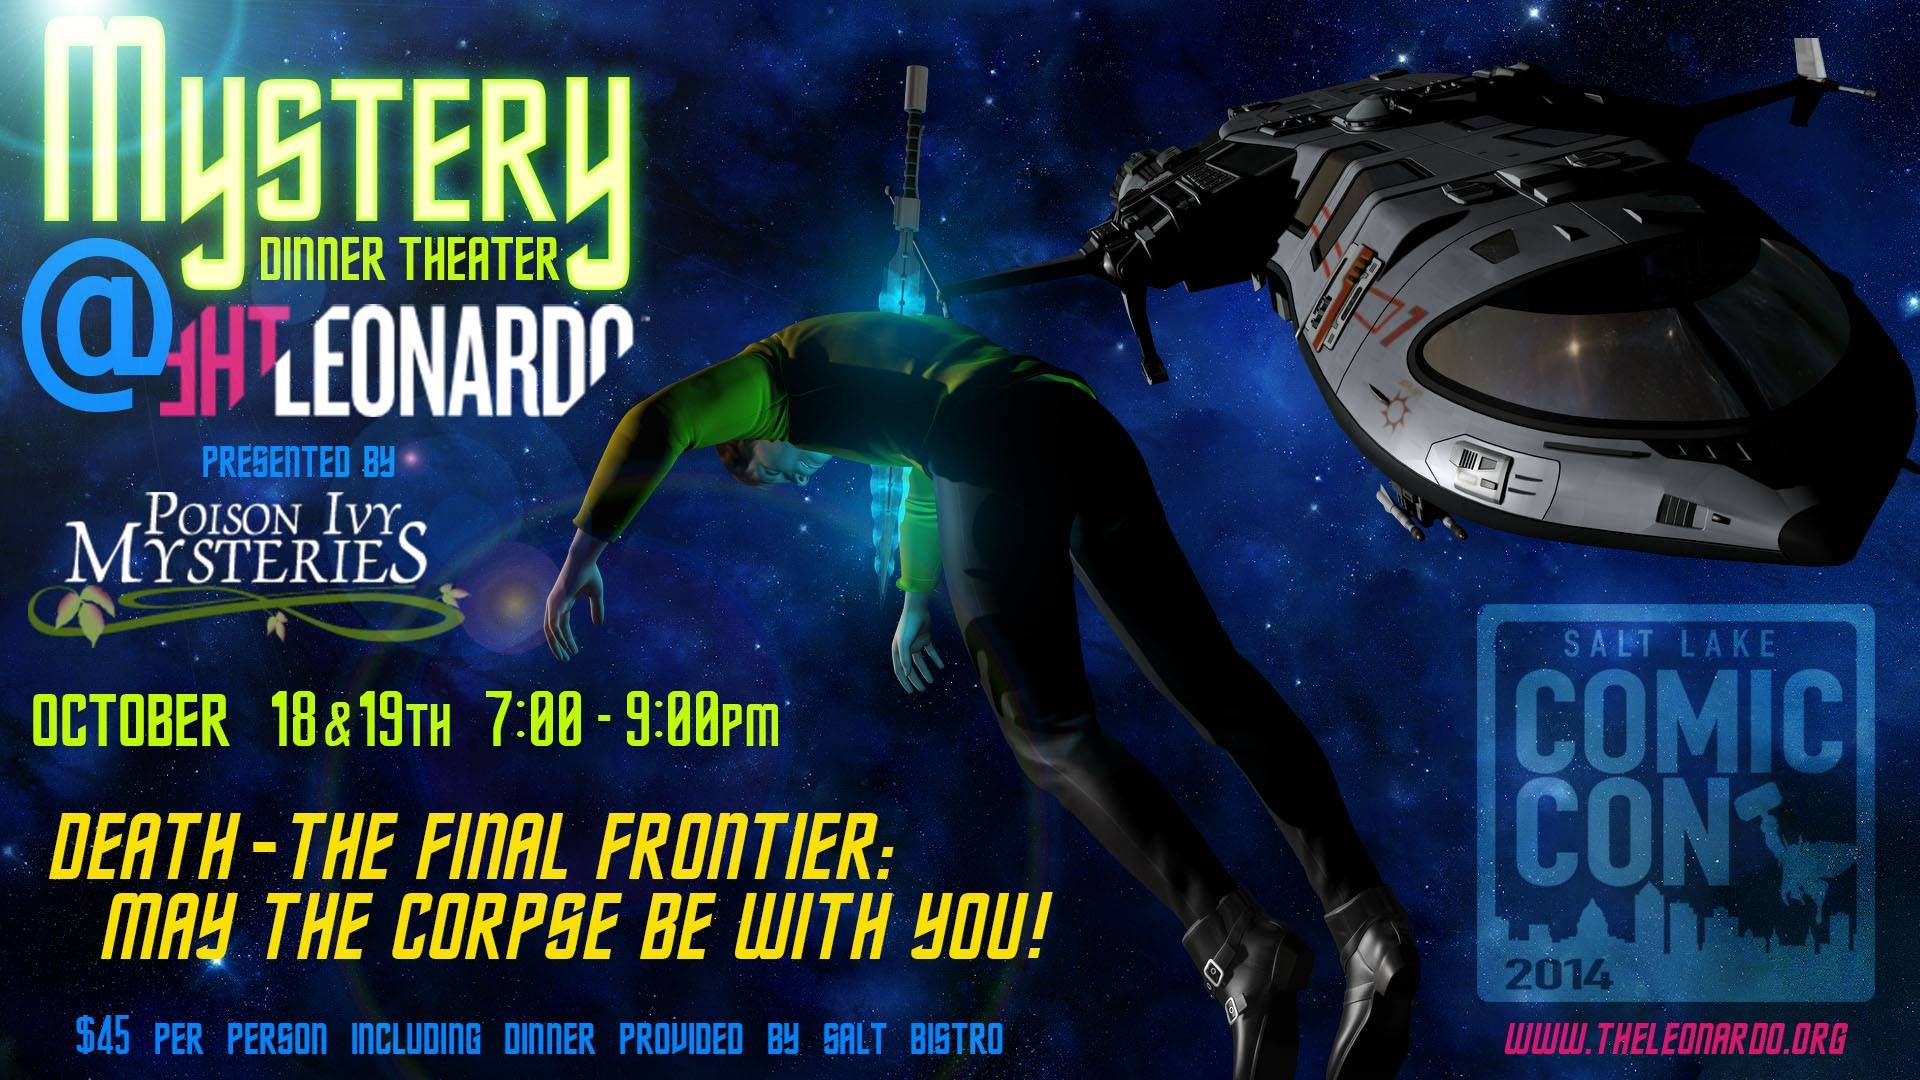 EVENT: October 18 + 19, Mystery Dinner Theater at The Leonardo. Death - The Final Frontier: May the Corpse Be With You! Info: http://www.theleonardo.org/programs/mystery-dinner  #SLC #Utah